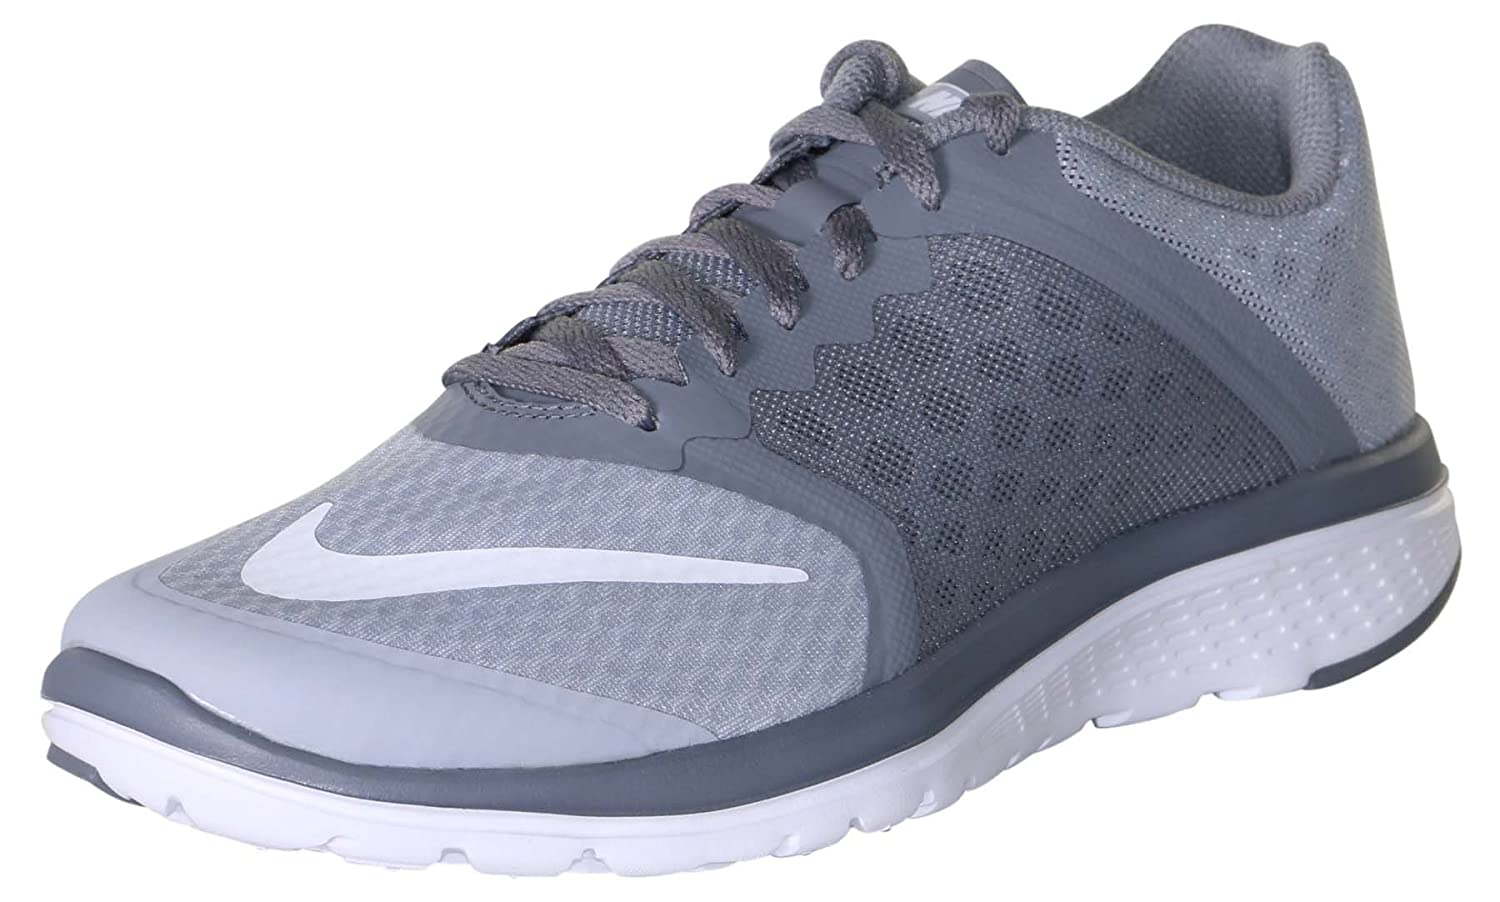 0a23dd5a35a Nike Men s FS Lite Run 3 Wolf Grey White Cool Grey Running Shoe 8 Men US   Buy Online at Low Prices in India - Amazon.in